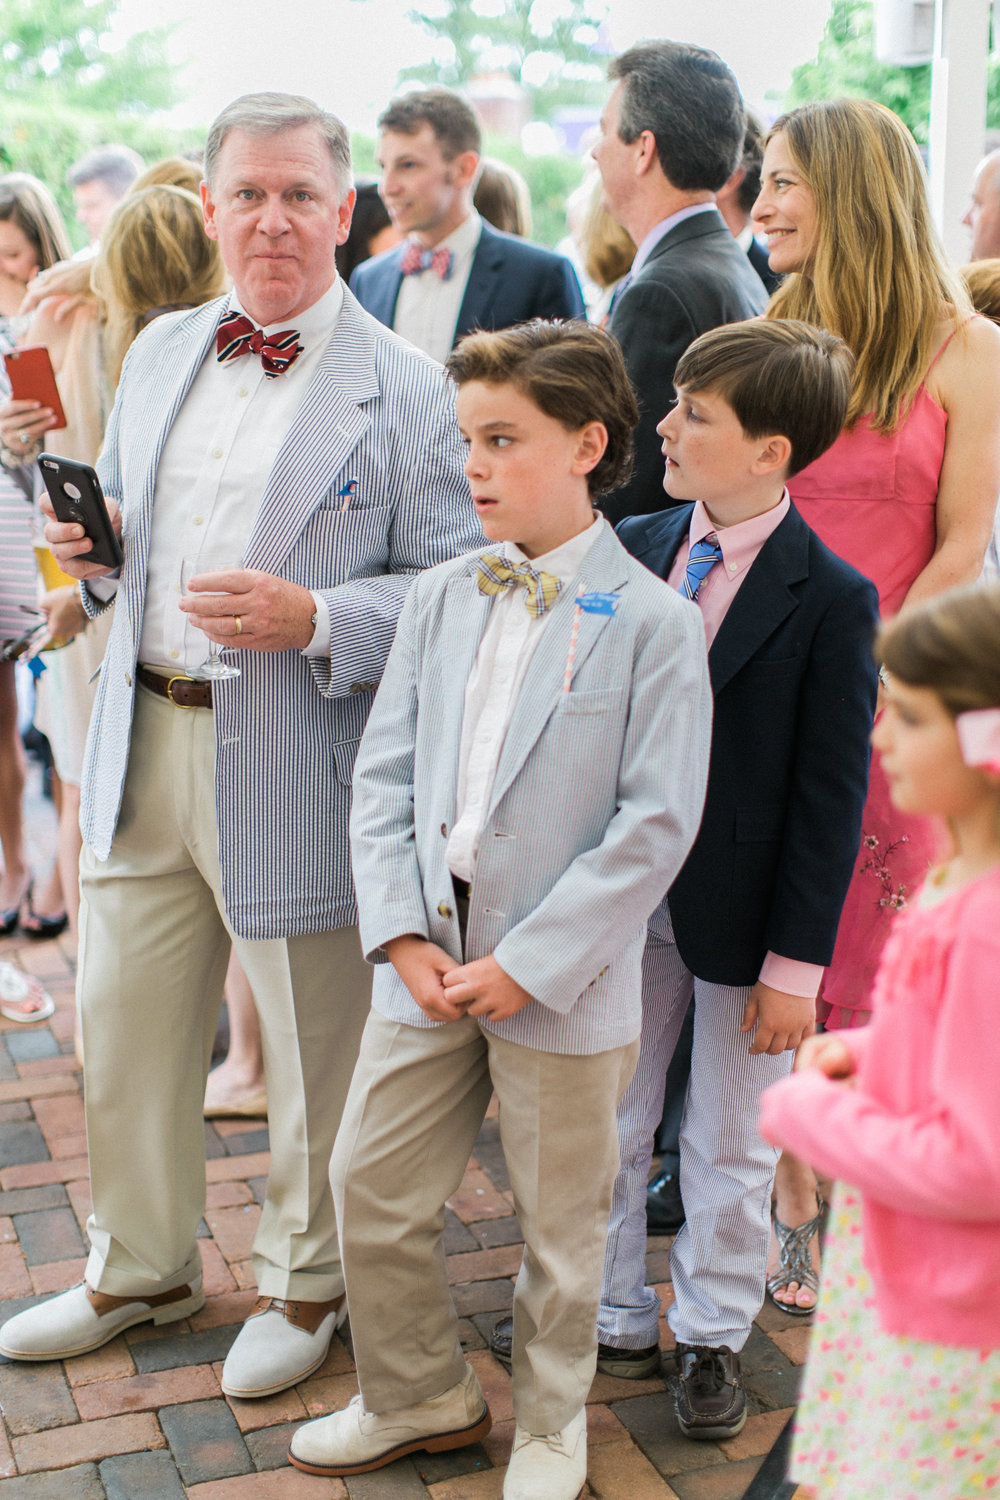 How cute is my uncle Mark matching his son, my cousin, August?! Seersucker sport coat, bowtie, khakis, white bucks. Precious.